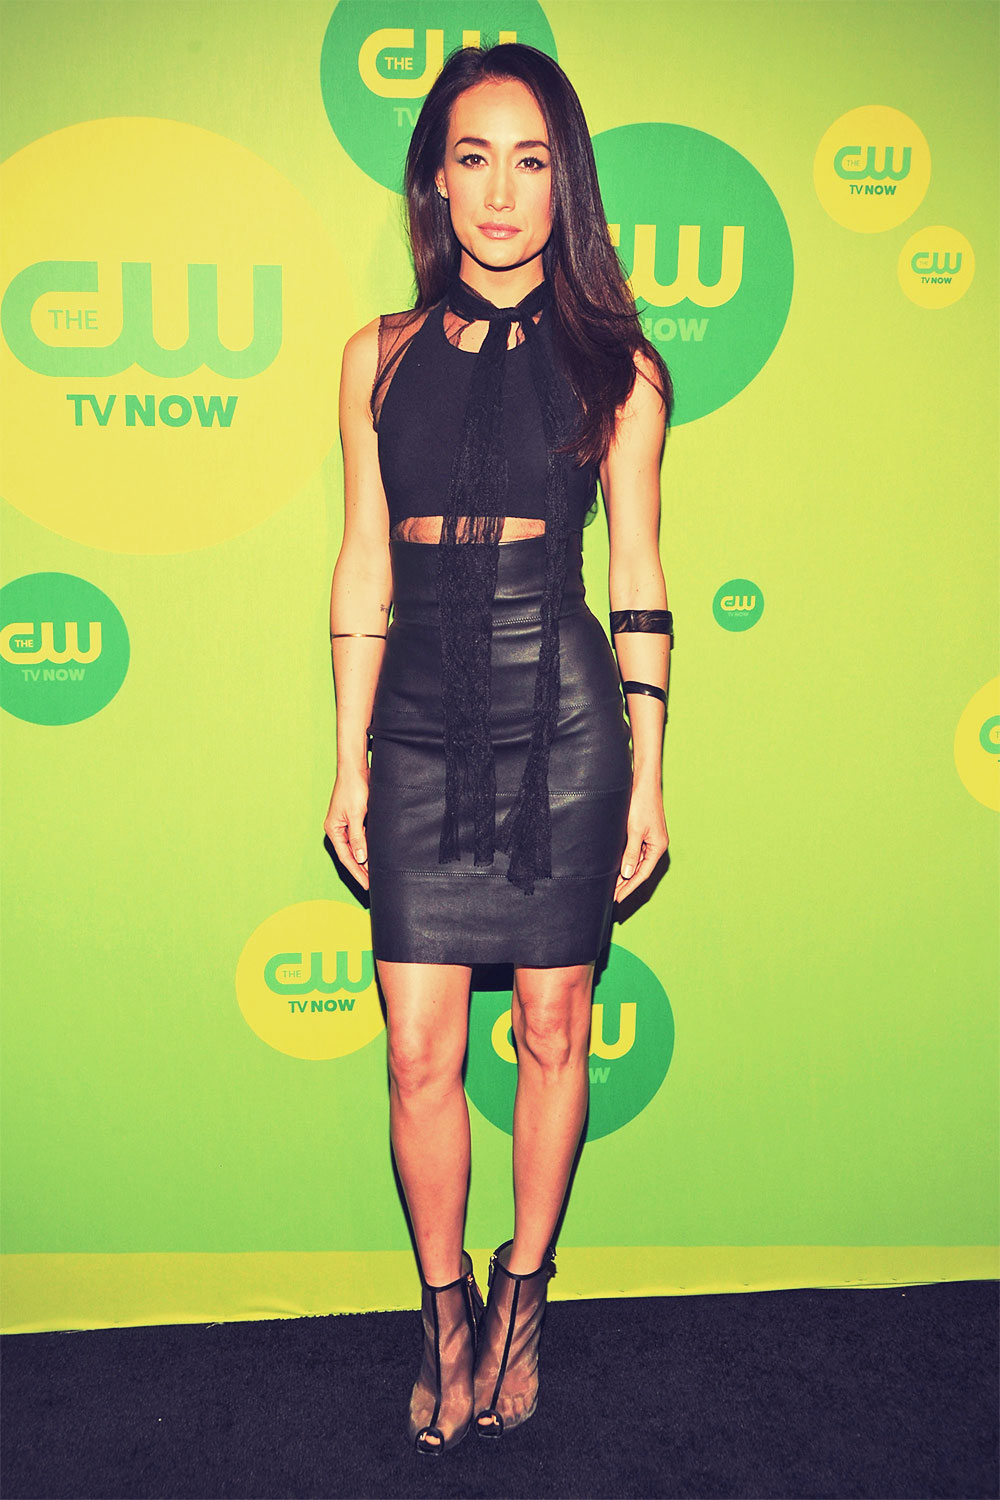 Maggie Q attends The CW 2013 Upfront Presentation